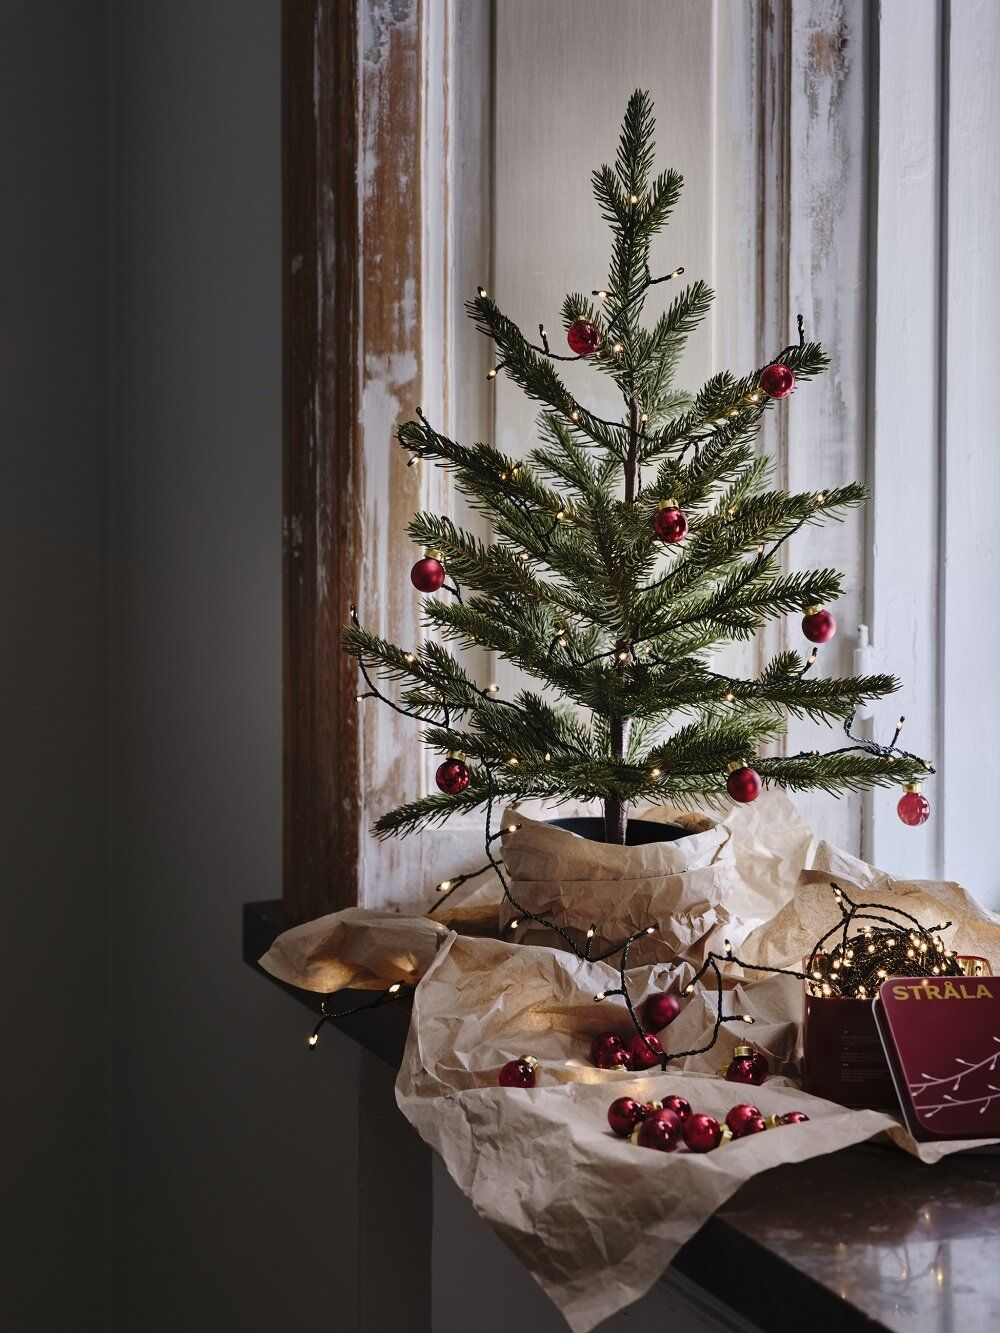 Ikea Christmas Collection 2020 Create Your Own Magical Moments The Nordroom In 2020 Ikea Christmas Tree Ikea Christmas Decorations Ikea Christmas